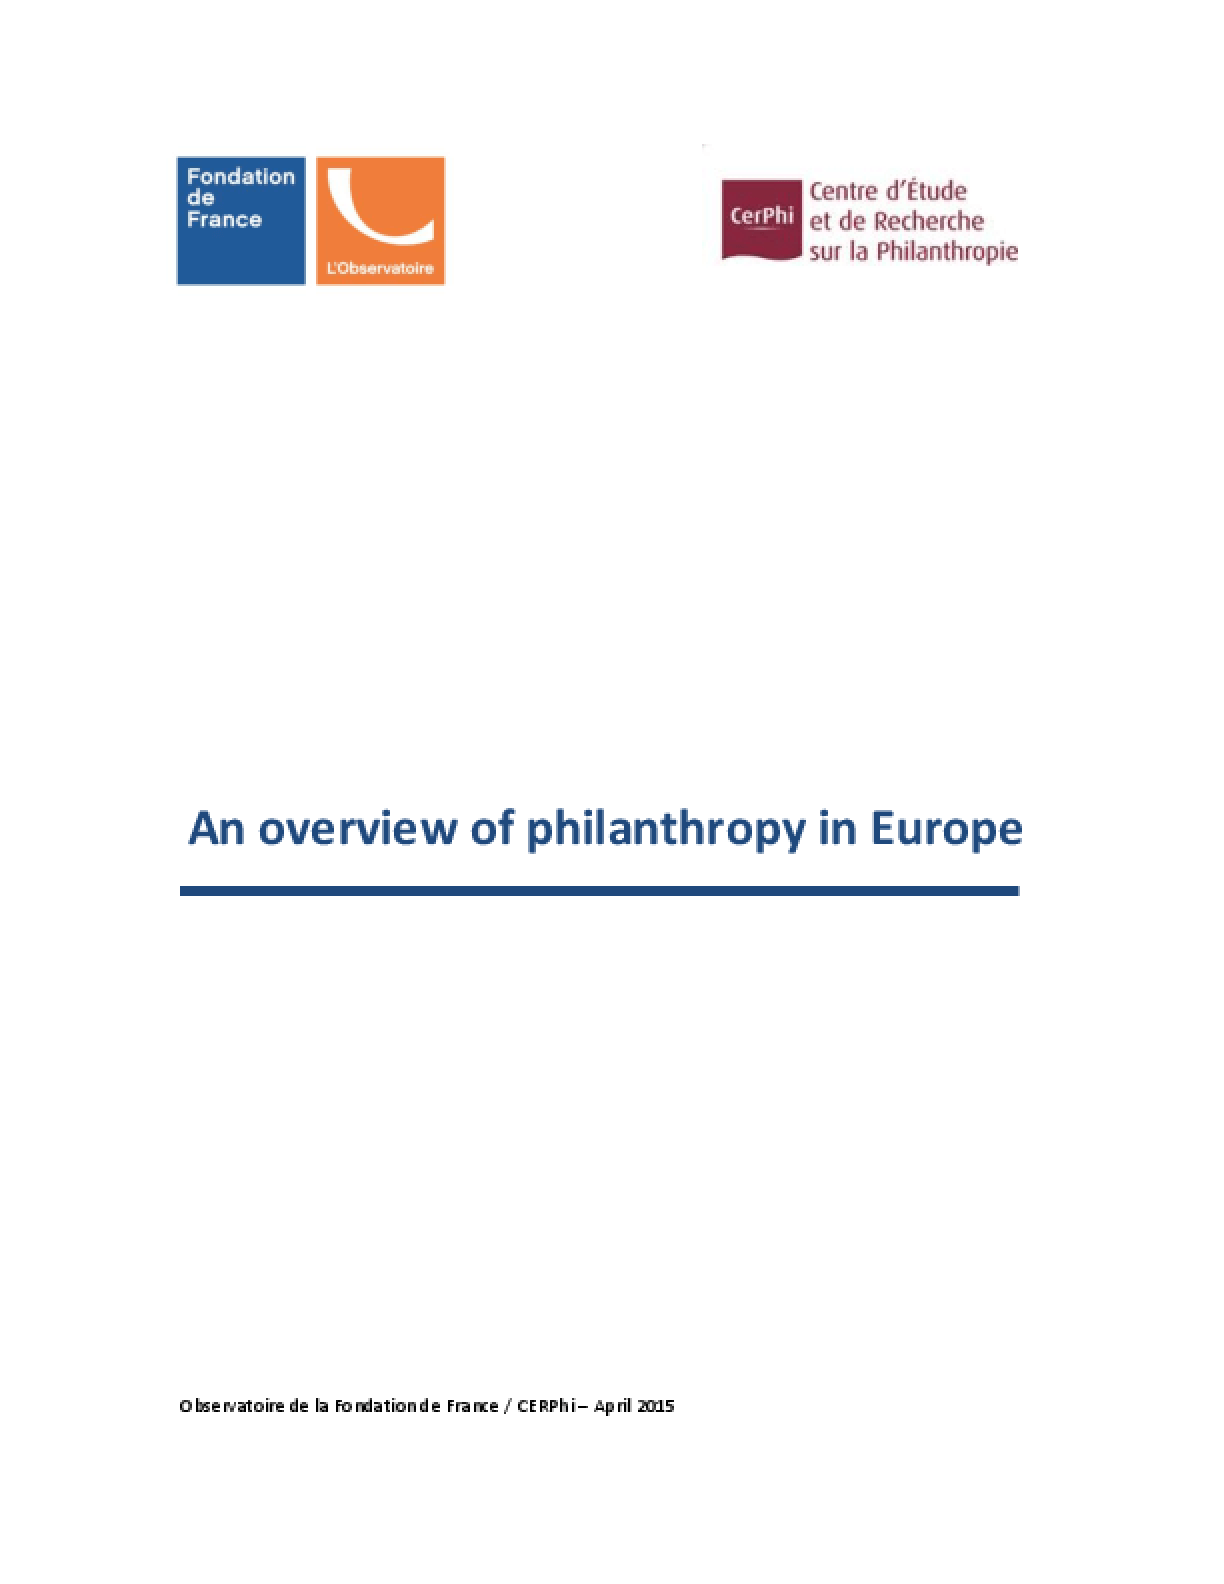 An Overview of Philanthropy in Europe